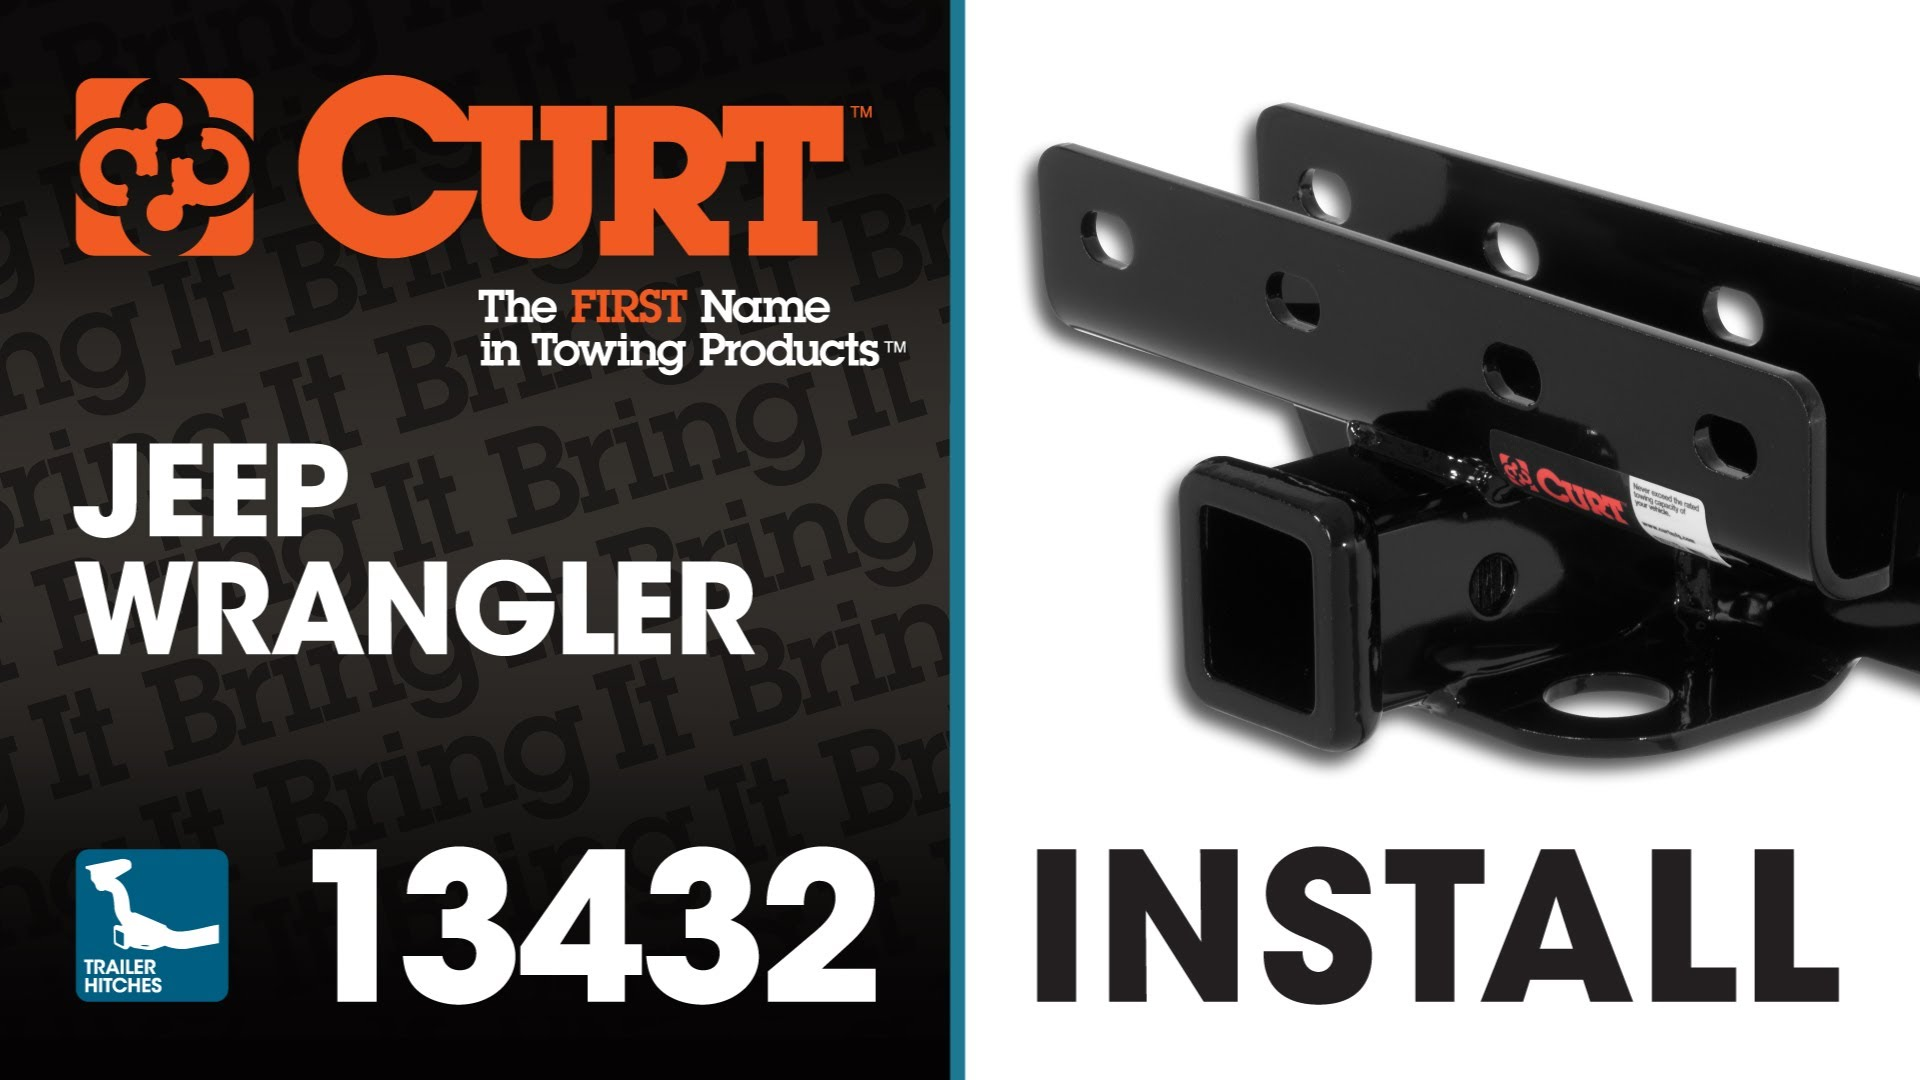 Trailer Hitch Install: CURT 13432 on Jeep Wrangler